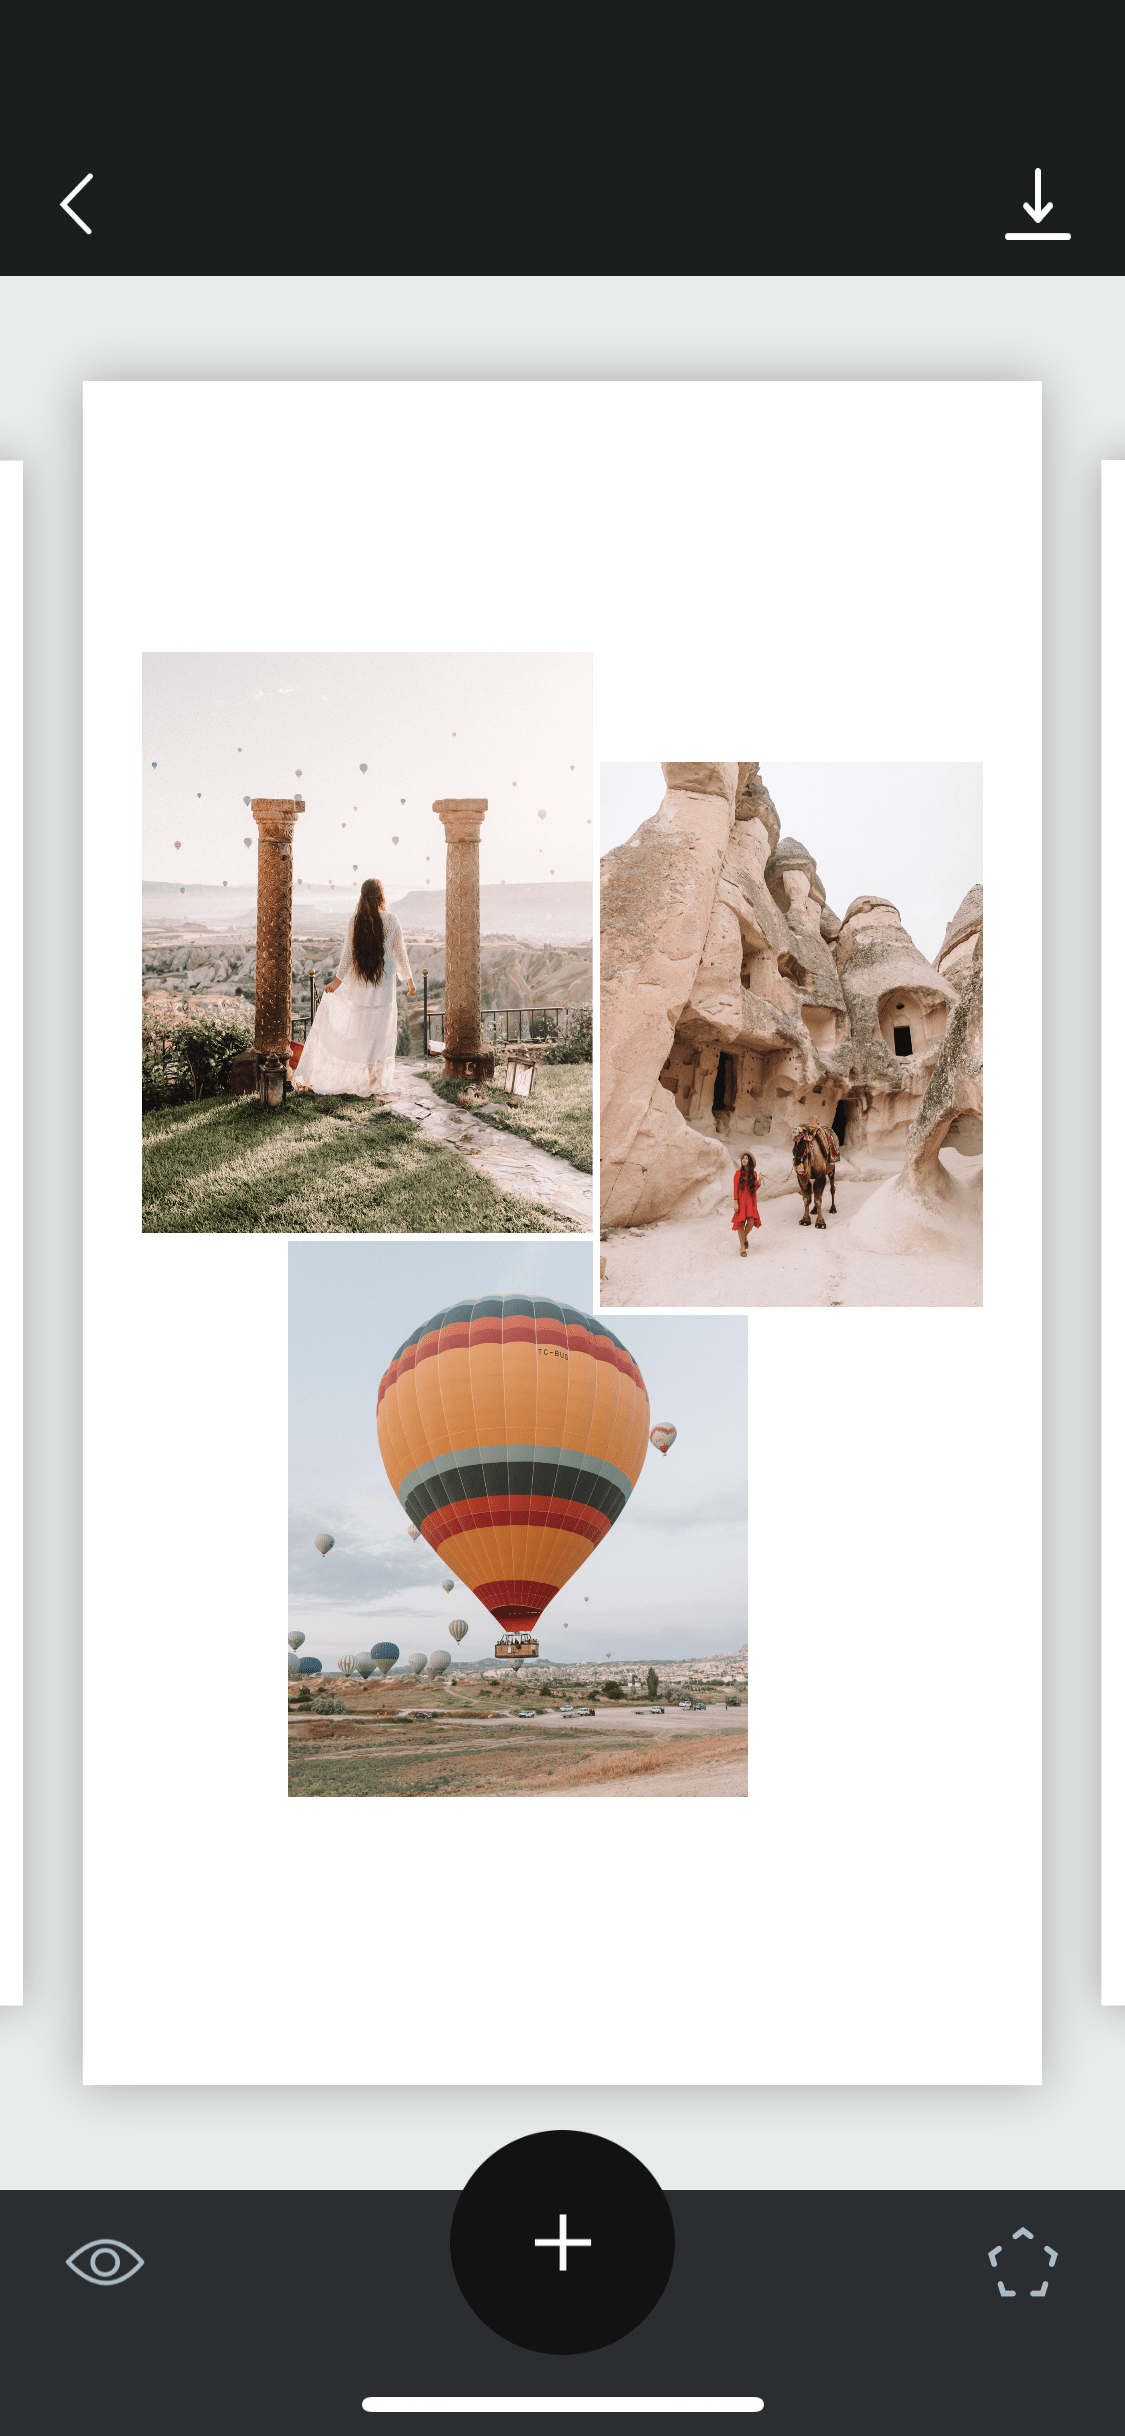 Best Instagram Story Editing Apps: Unfold